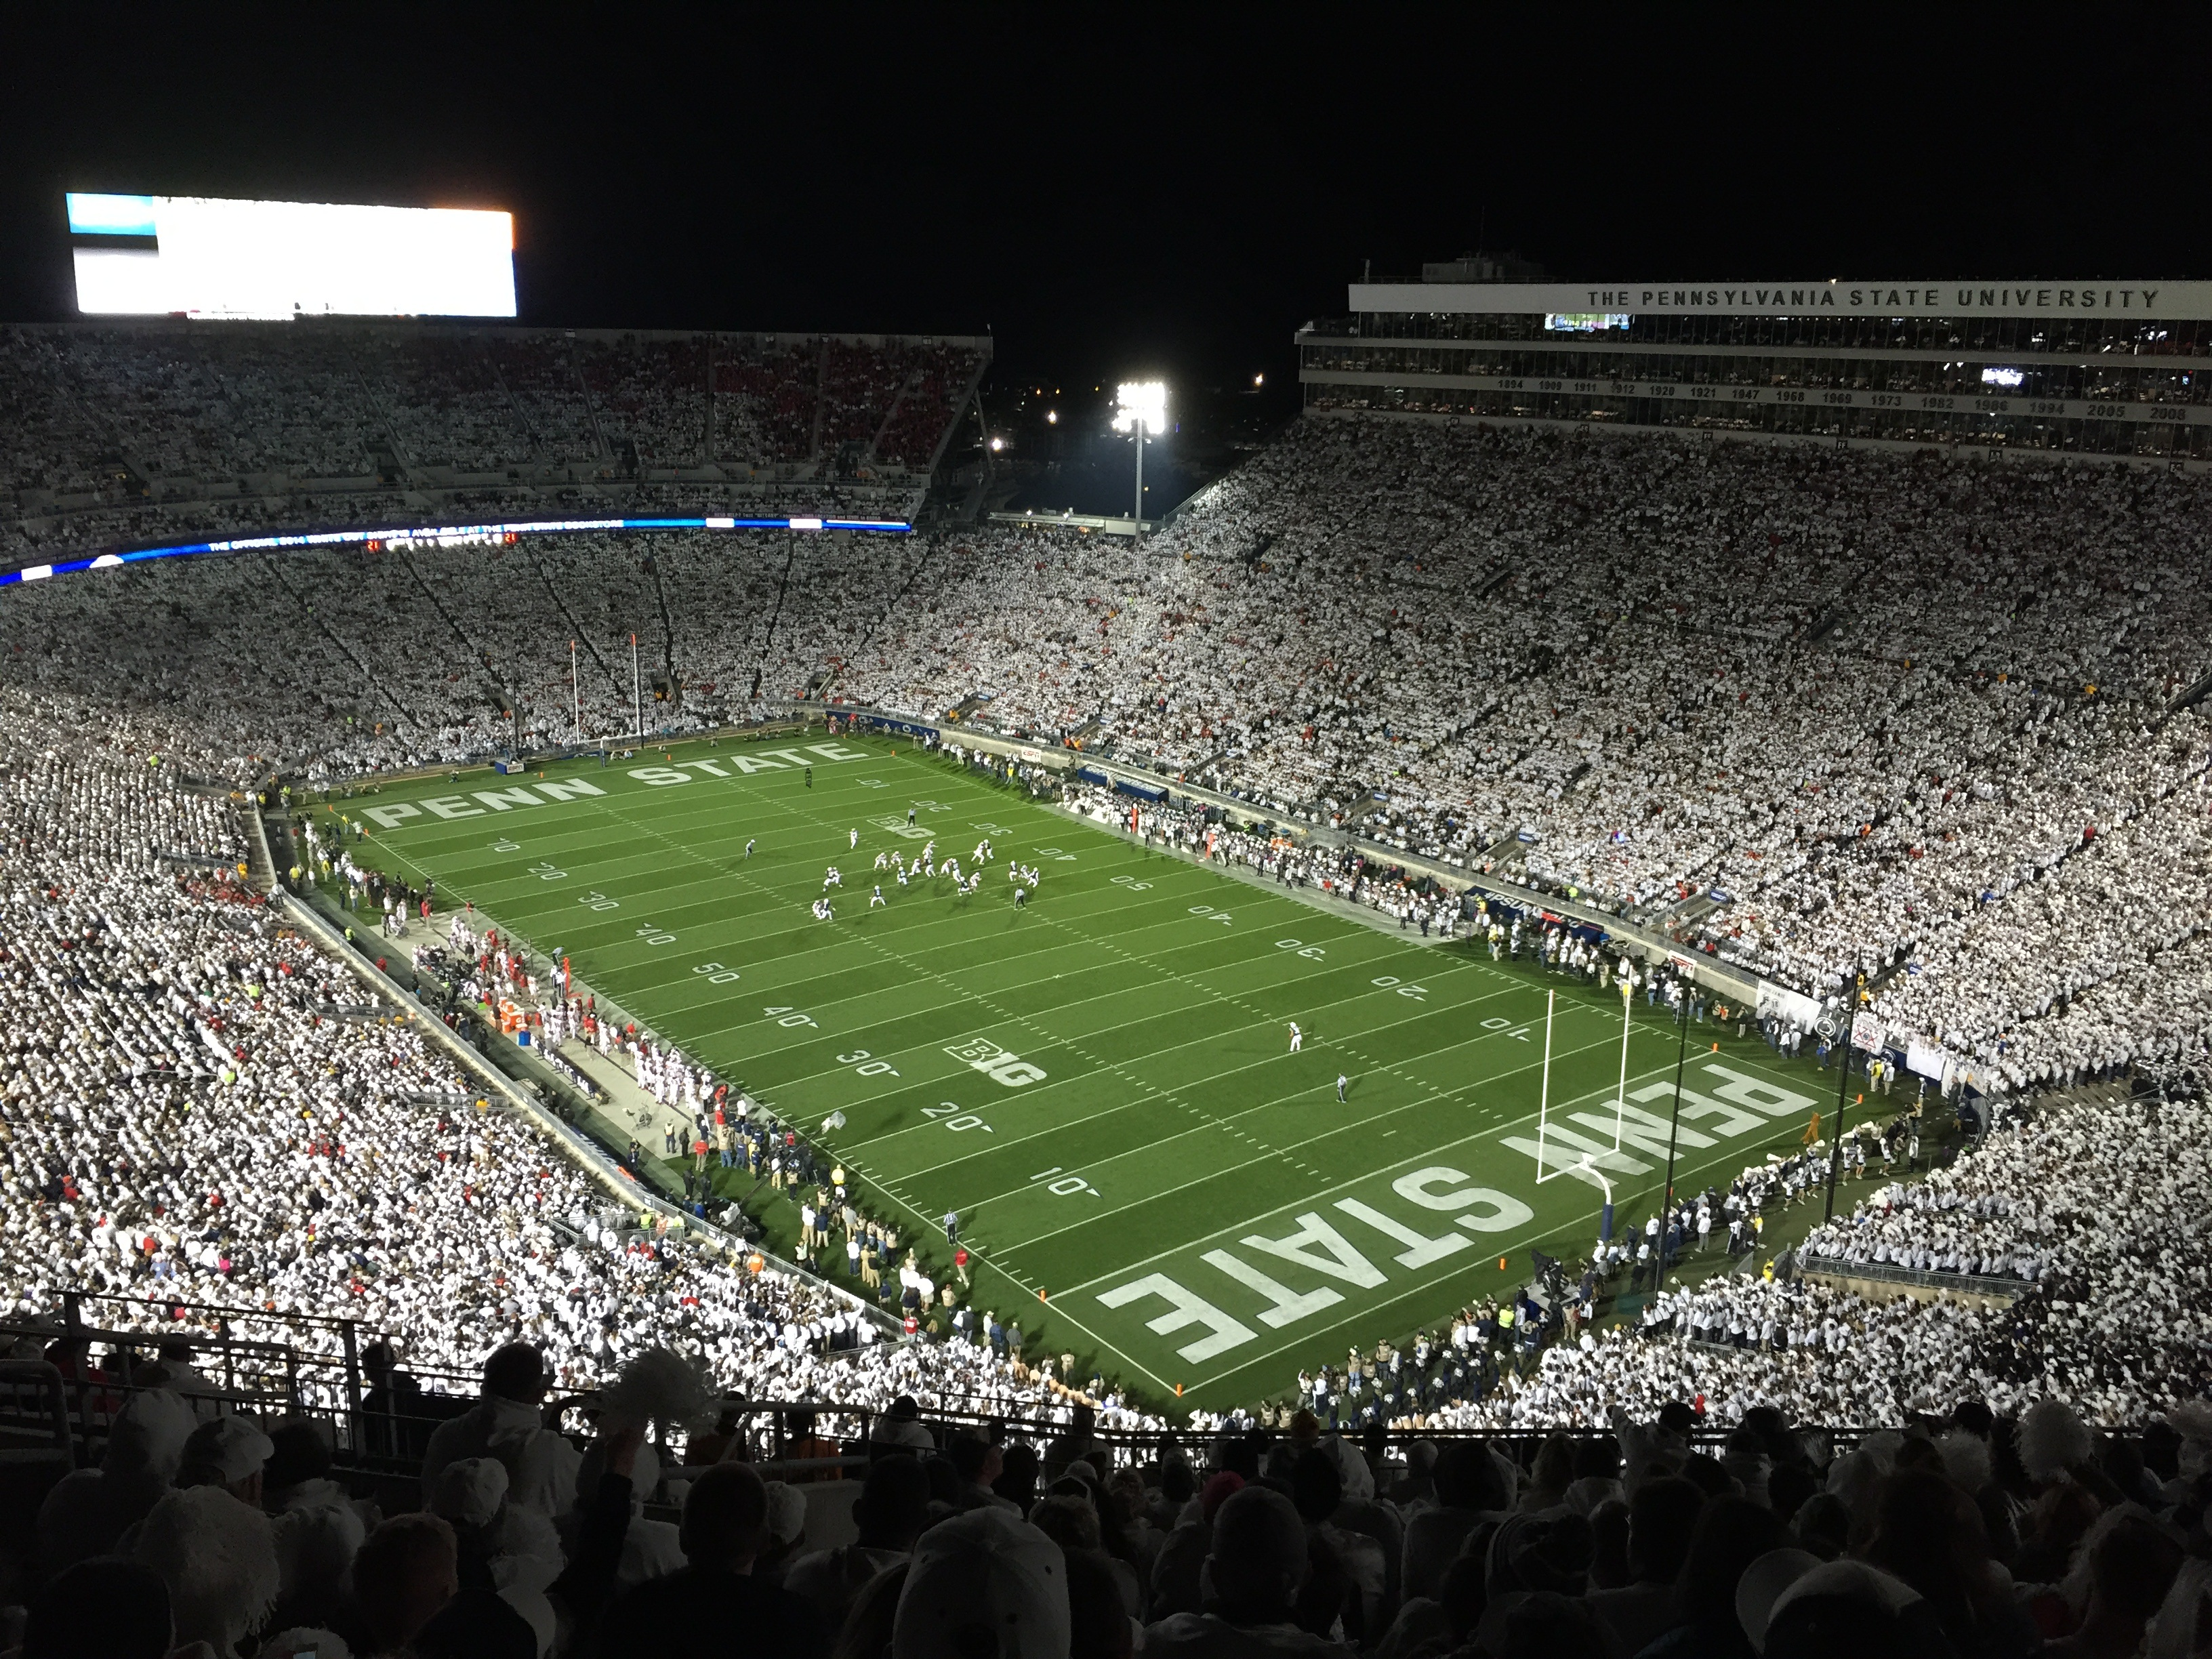 Best Iphone 4 Wallpapers Hd Free Stock Photo Of Crowd Football Penn State